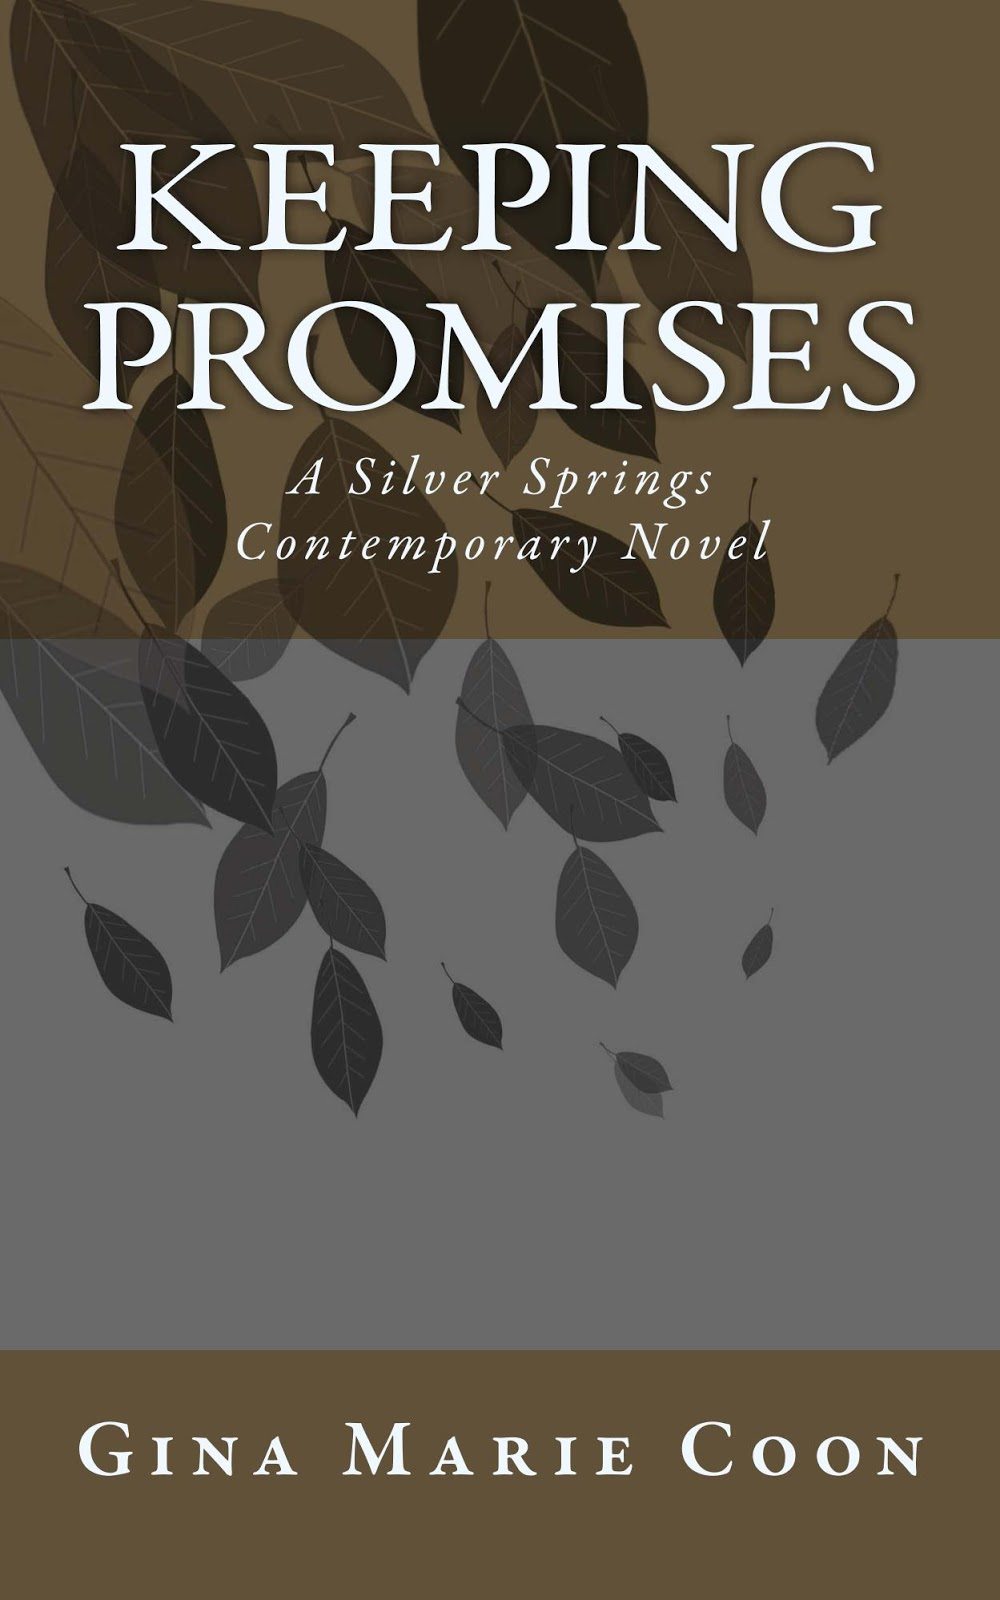 keeping promises For if the inheritance is of the law, it is no longer of promise but god gave it to abraham by promise: if the inheritance offered to abraham was on the basis of law, it might not be permanent - because it would depend, at least in part, on abraham's keeping of the law.